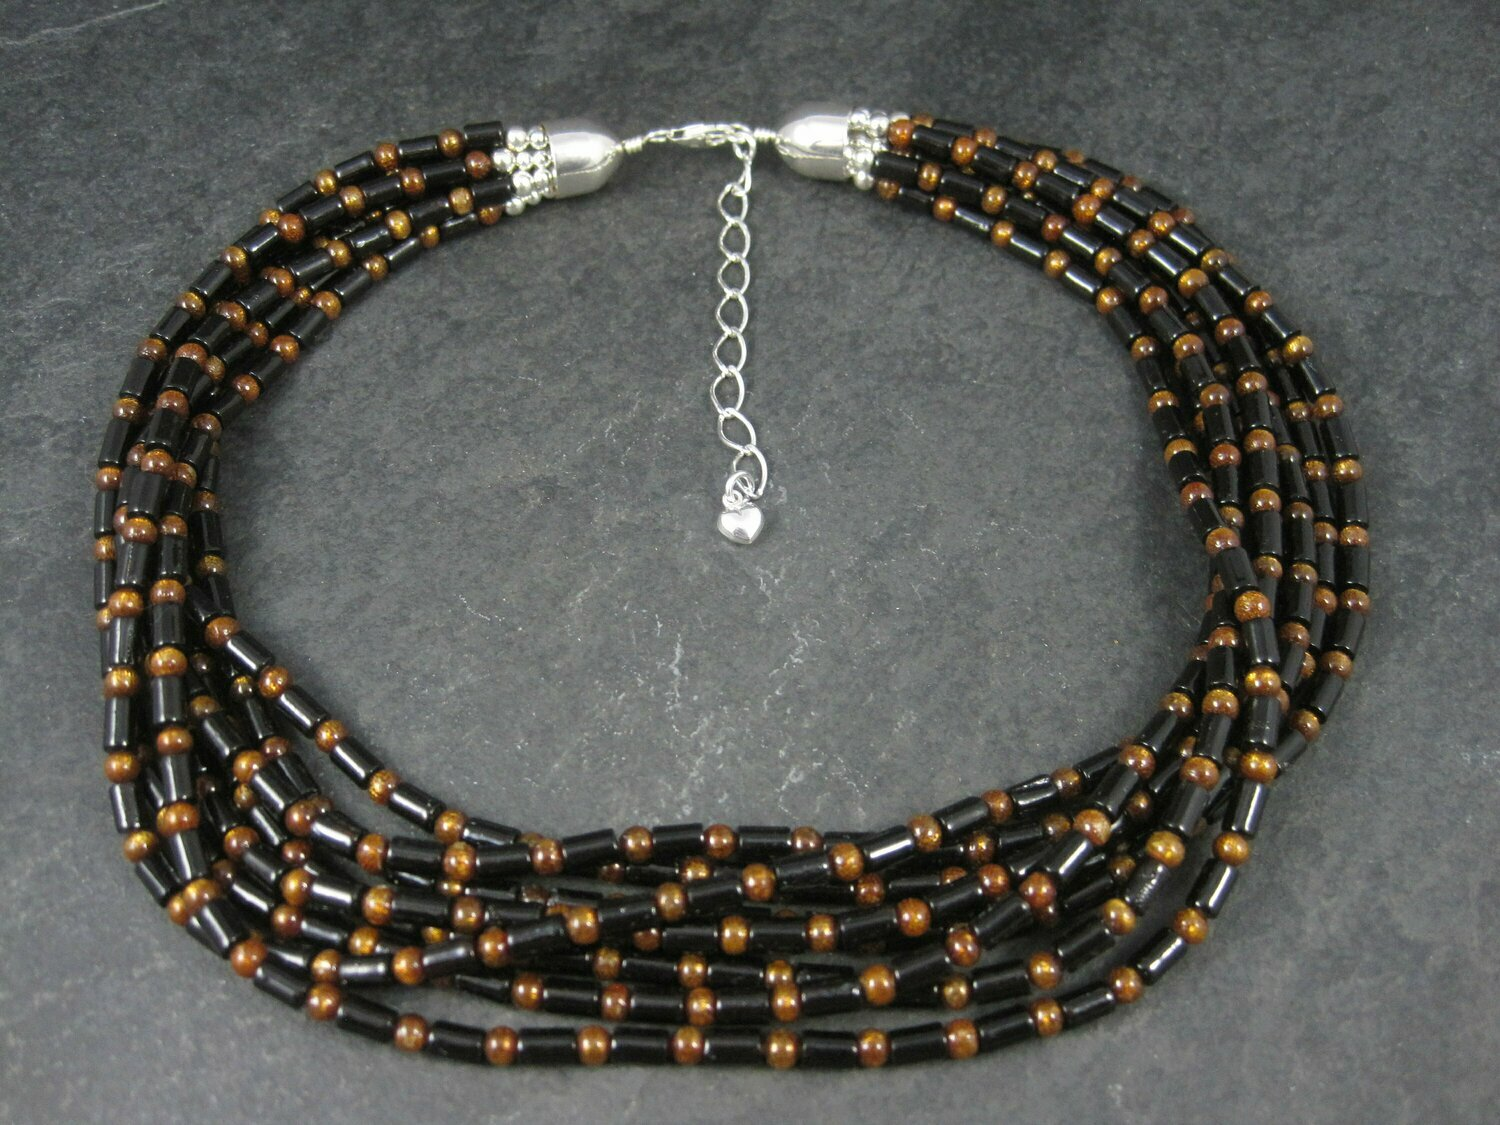 Vintage Southwestern 8 Strand Black Copper Bead Necklace 17-20 Inches